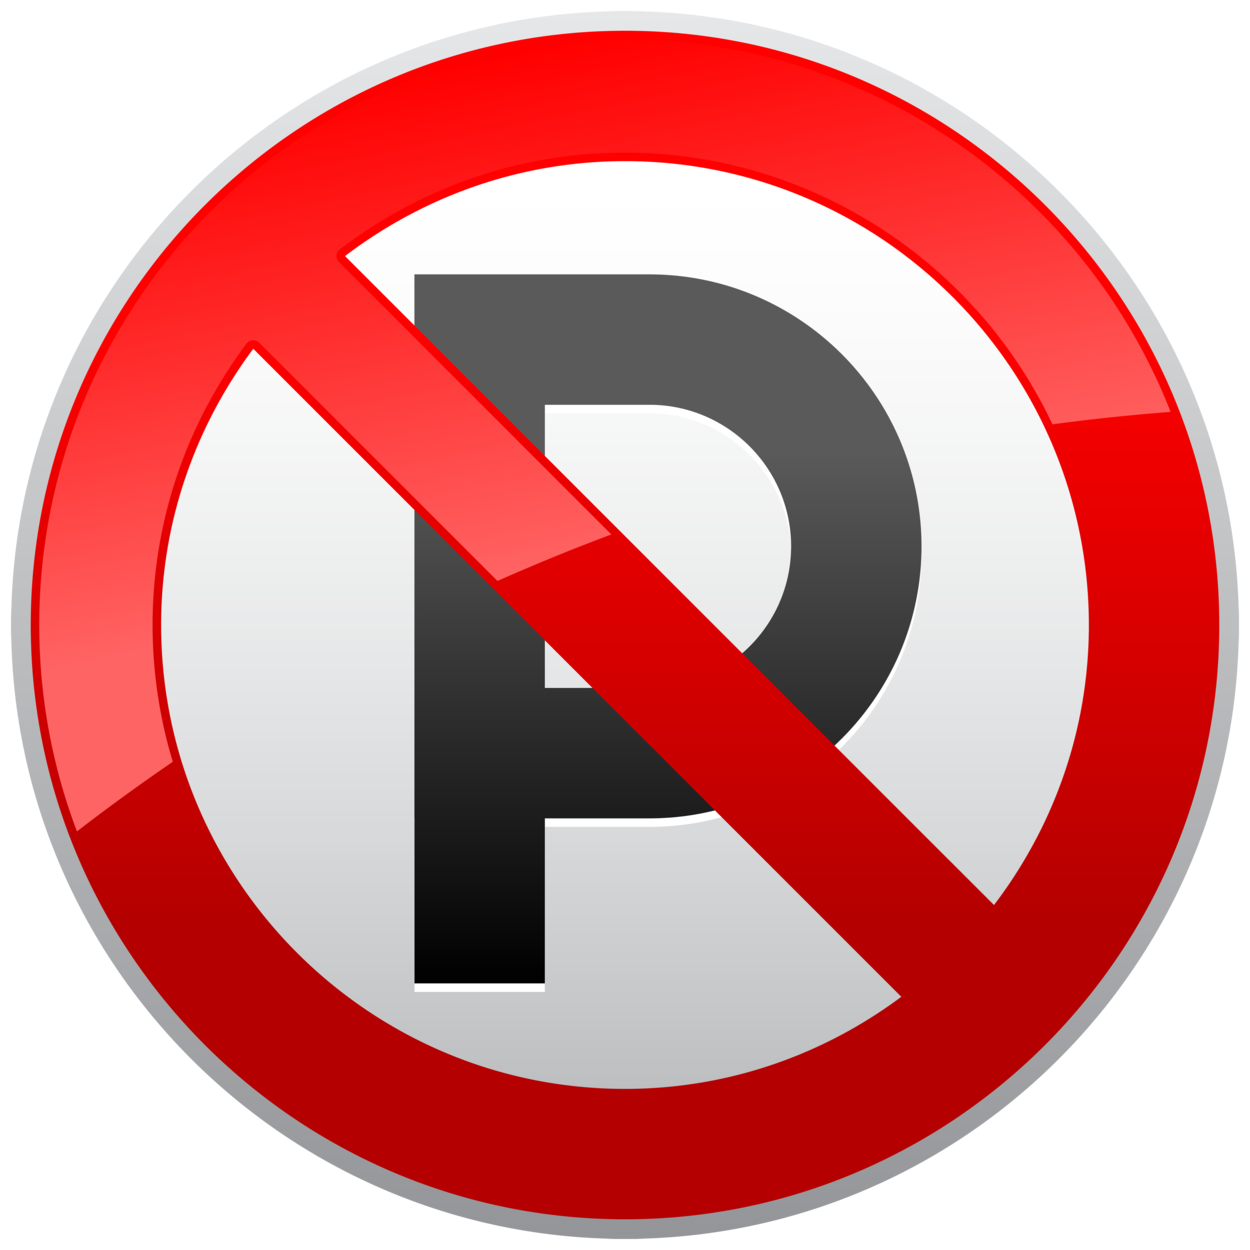 No Parking Prohibition Sign PNG Clipart